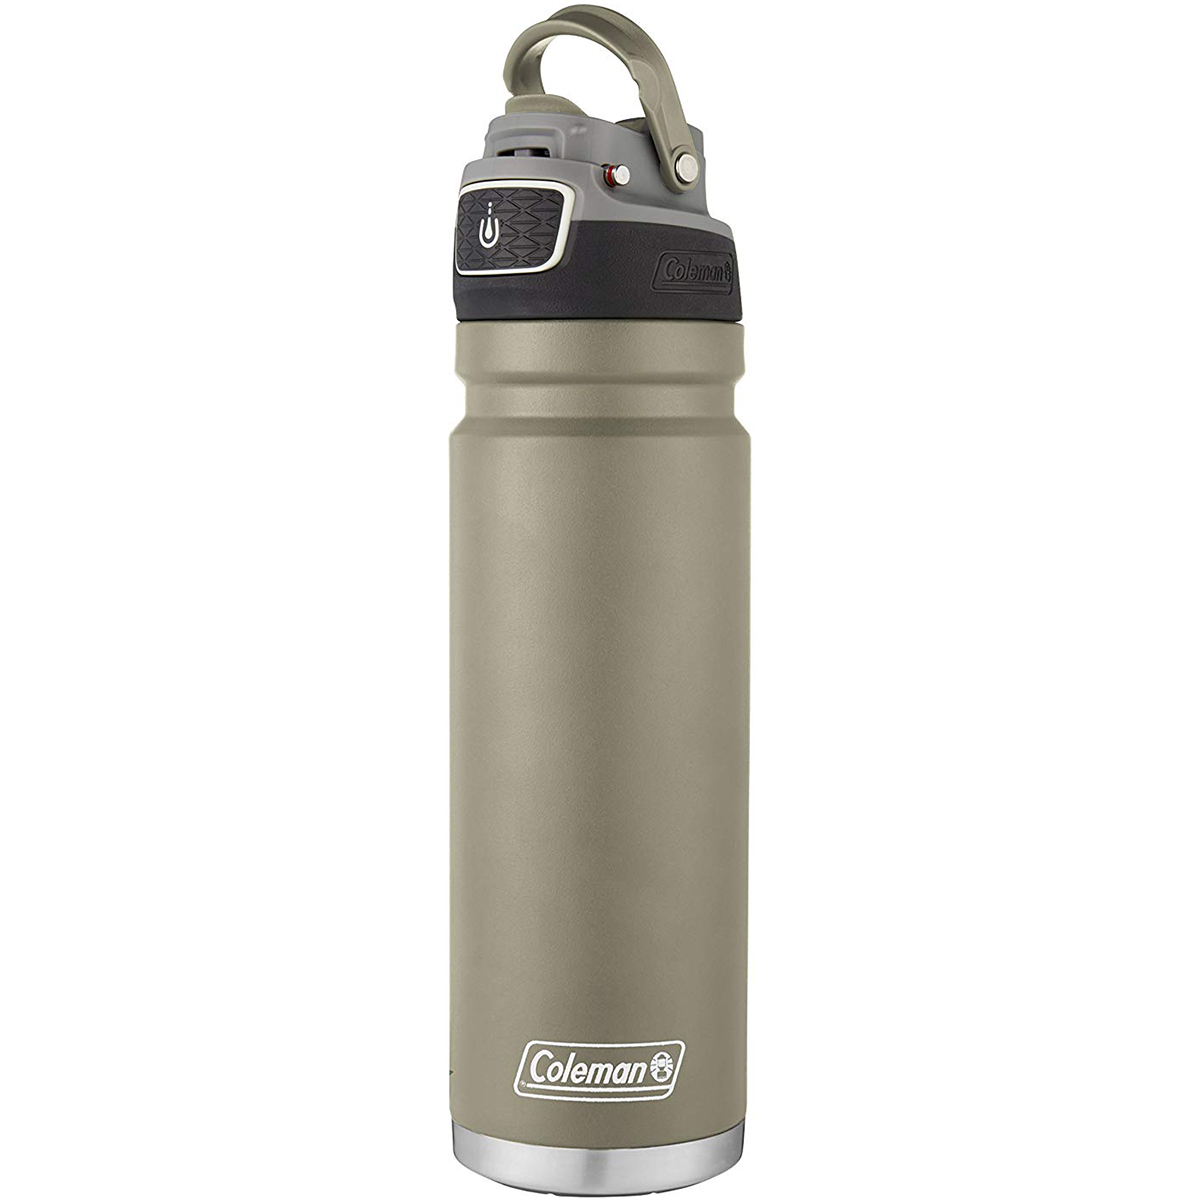 Coleman-24-oz-Free-Flow-Autoseal-Insulated-Stainless-Steel-Water-Bottle thumbnail 17